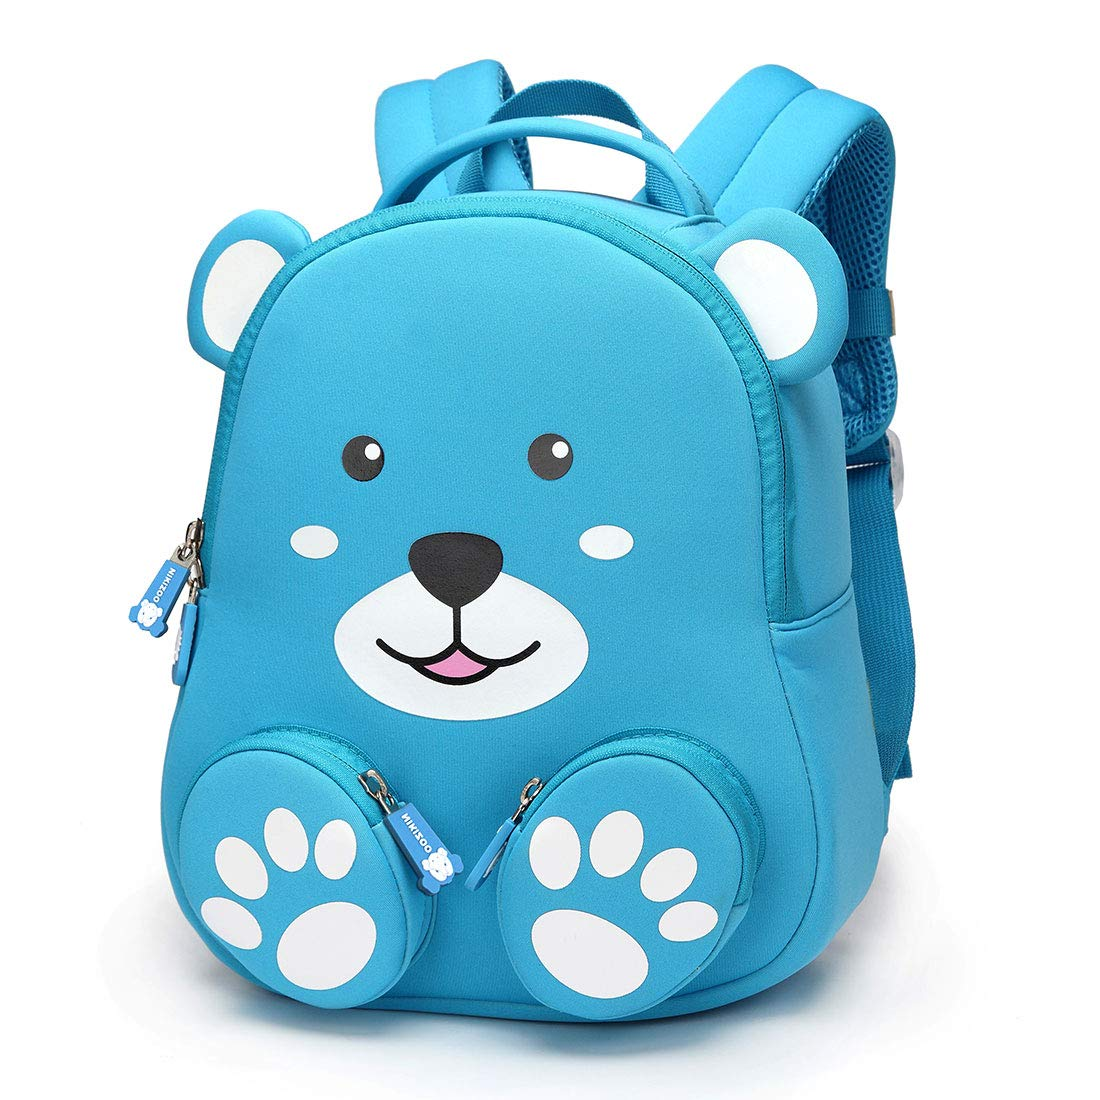 bc16df7948ad Amazon.com  Panda Toddler Backpack 3D Zoo Backpacks with Leash Anti-Lost  Harness Kids Baby Mini Schoolbags Girls Boys Animal Neoprene Waterproof  Bookbag ...